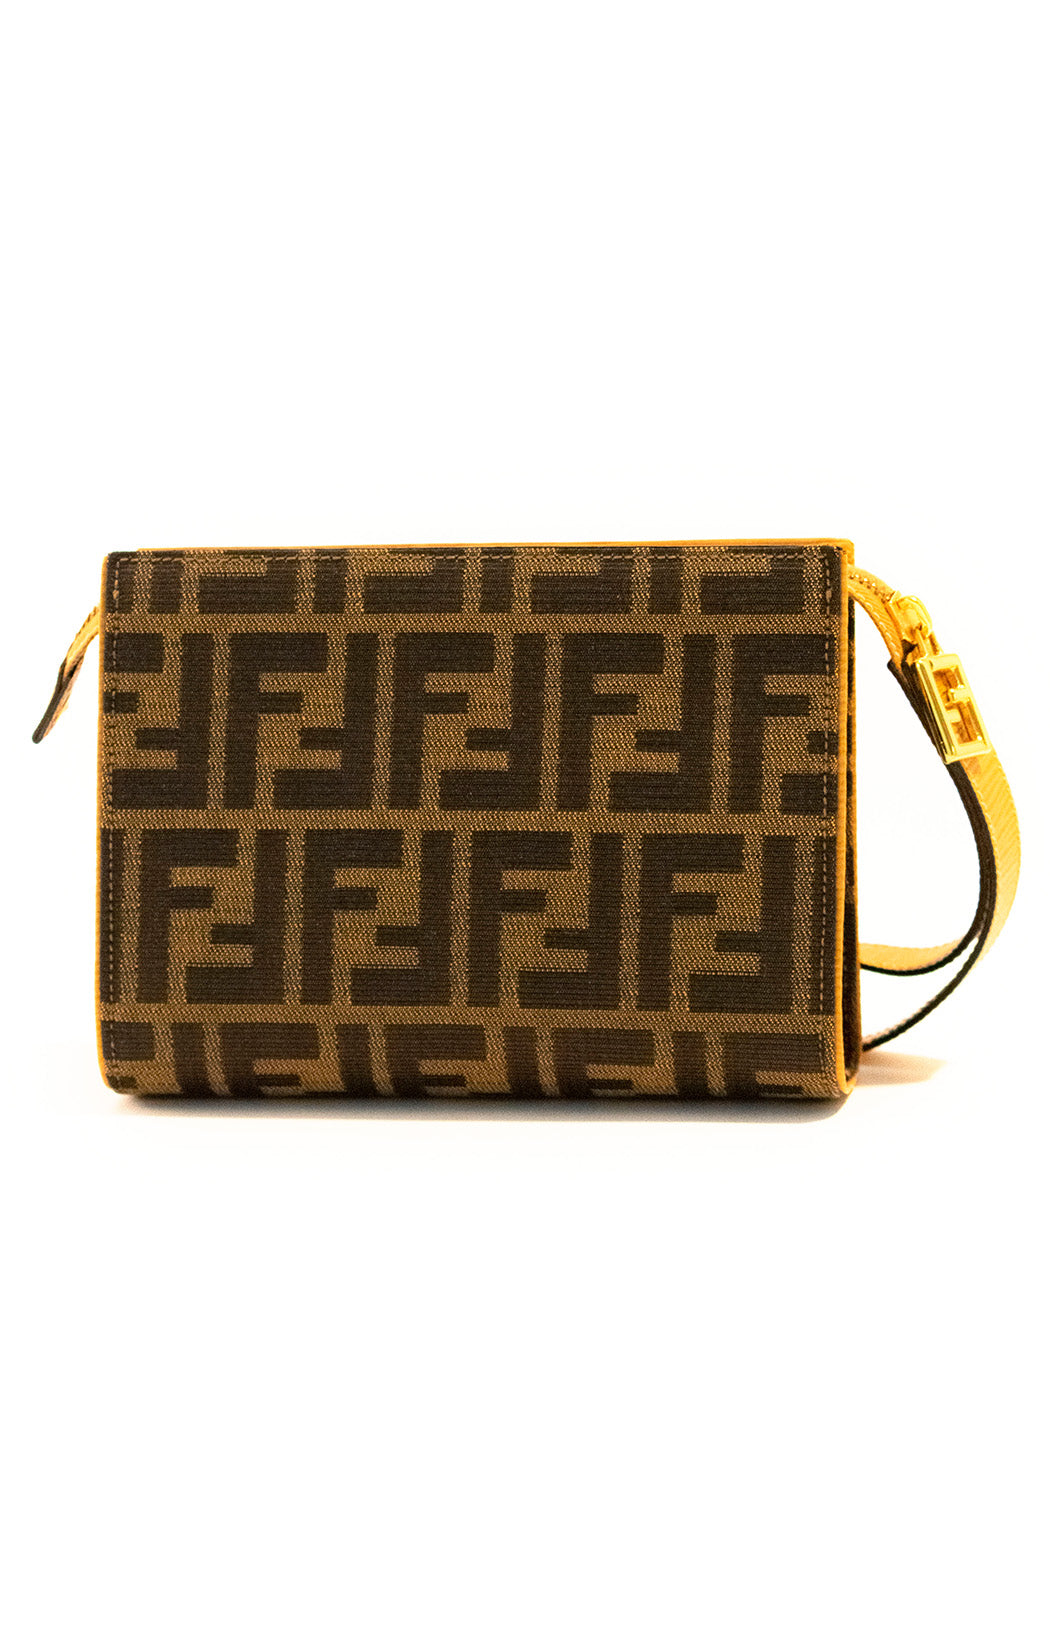 Back view of FENDI Wrist bag